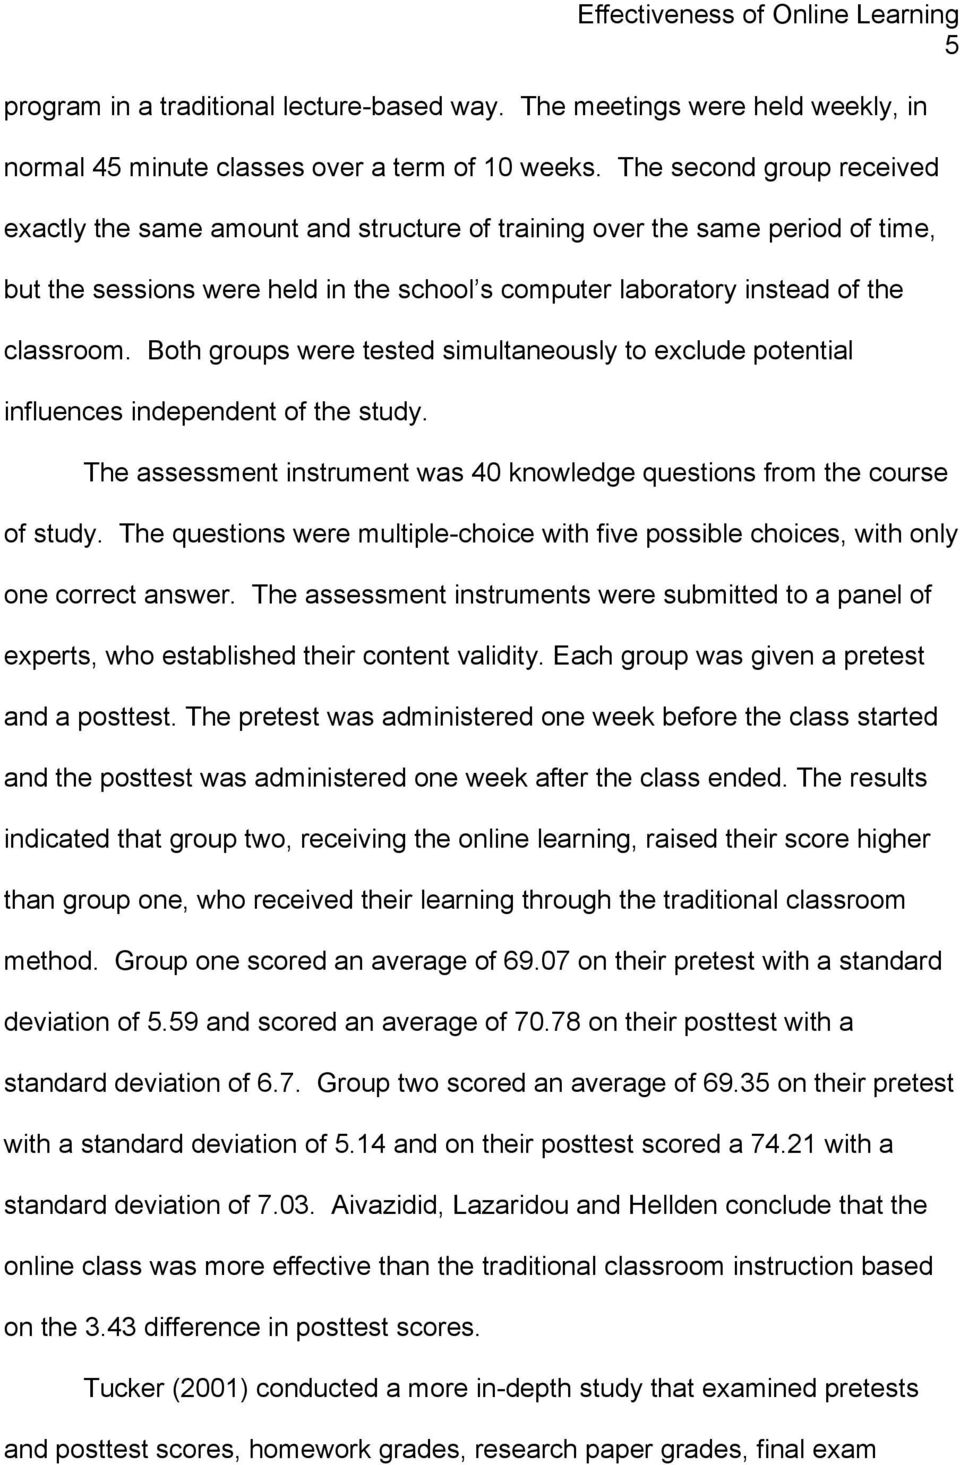 Both groups were tested simultaneously to exclude potential influences independent of the study. The assessment instrument was 40 knowledge questions from the course of study.